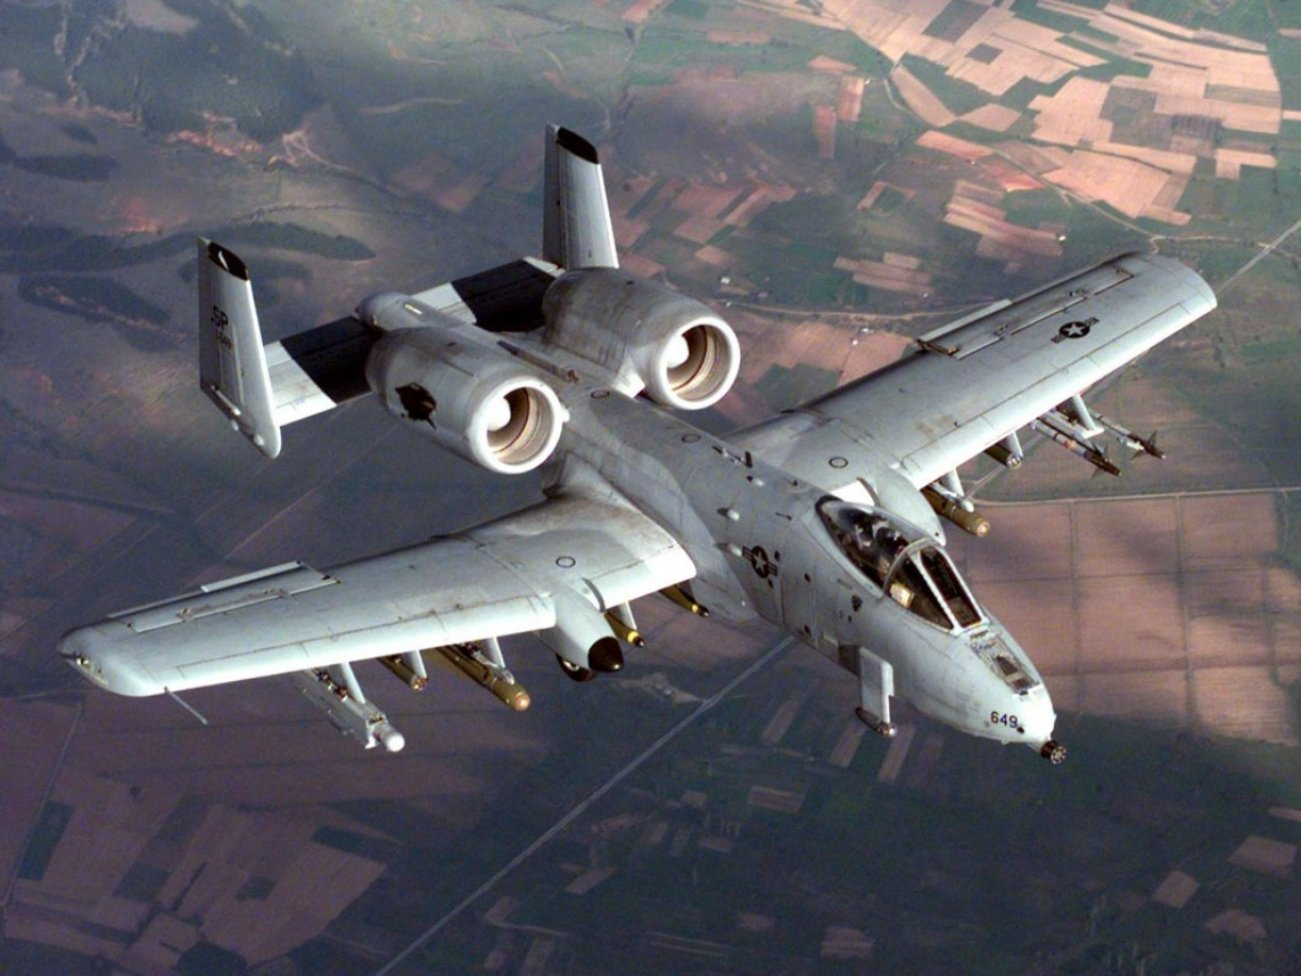 These 5 Attack Aircraft Have Wrecked Havoc Around the World